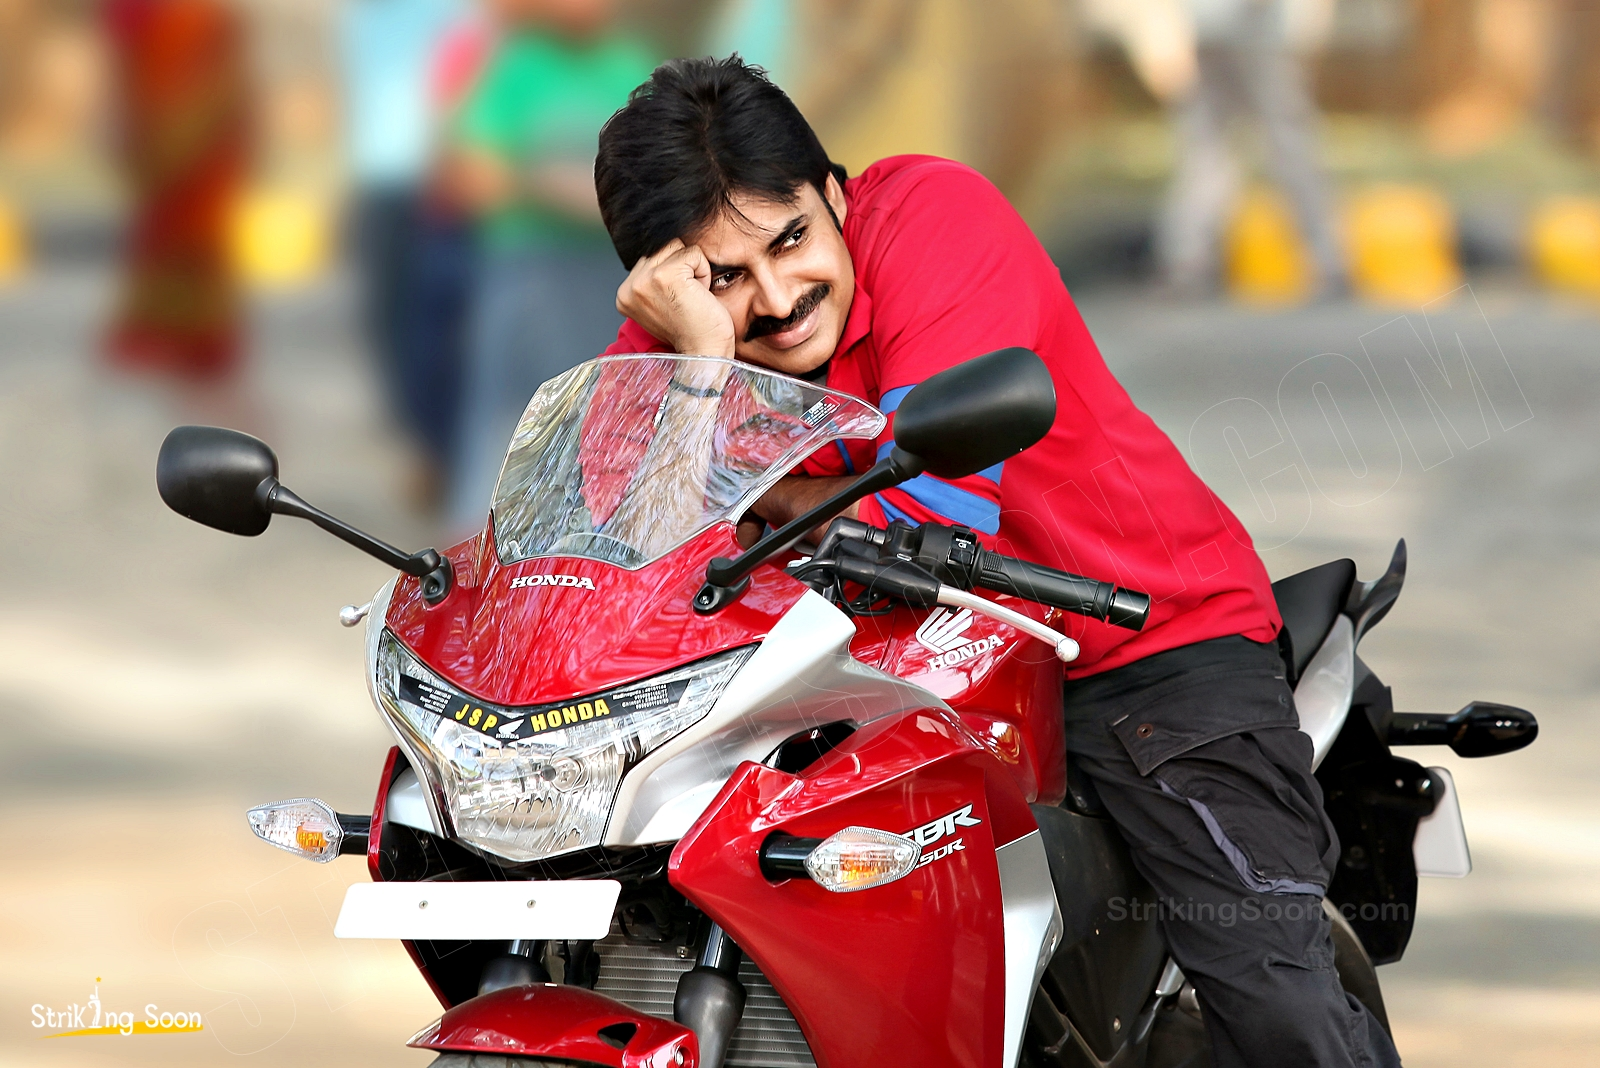 attarintiki daredi pawan kalyan movie download : asu no yoichi